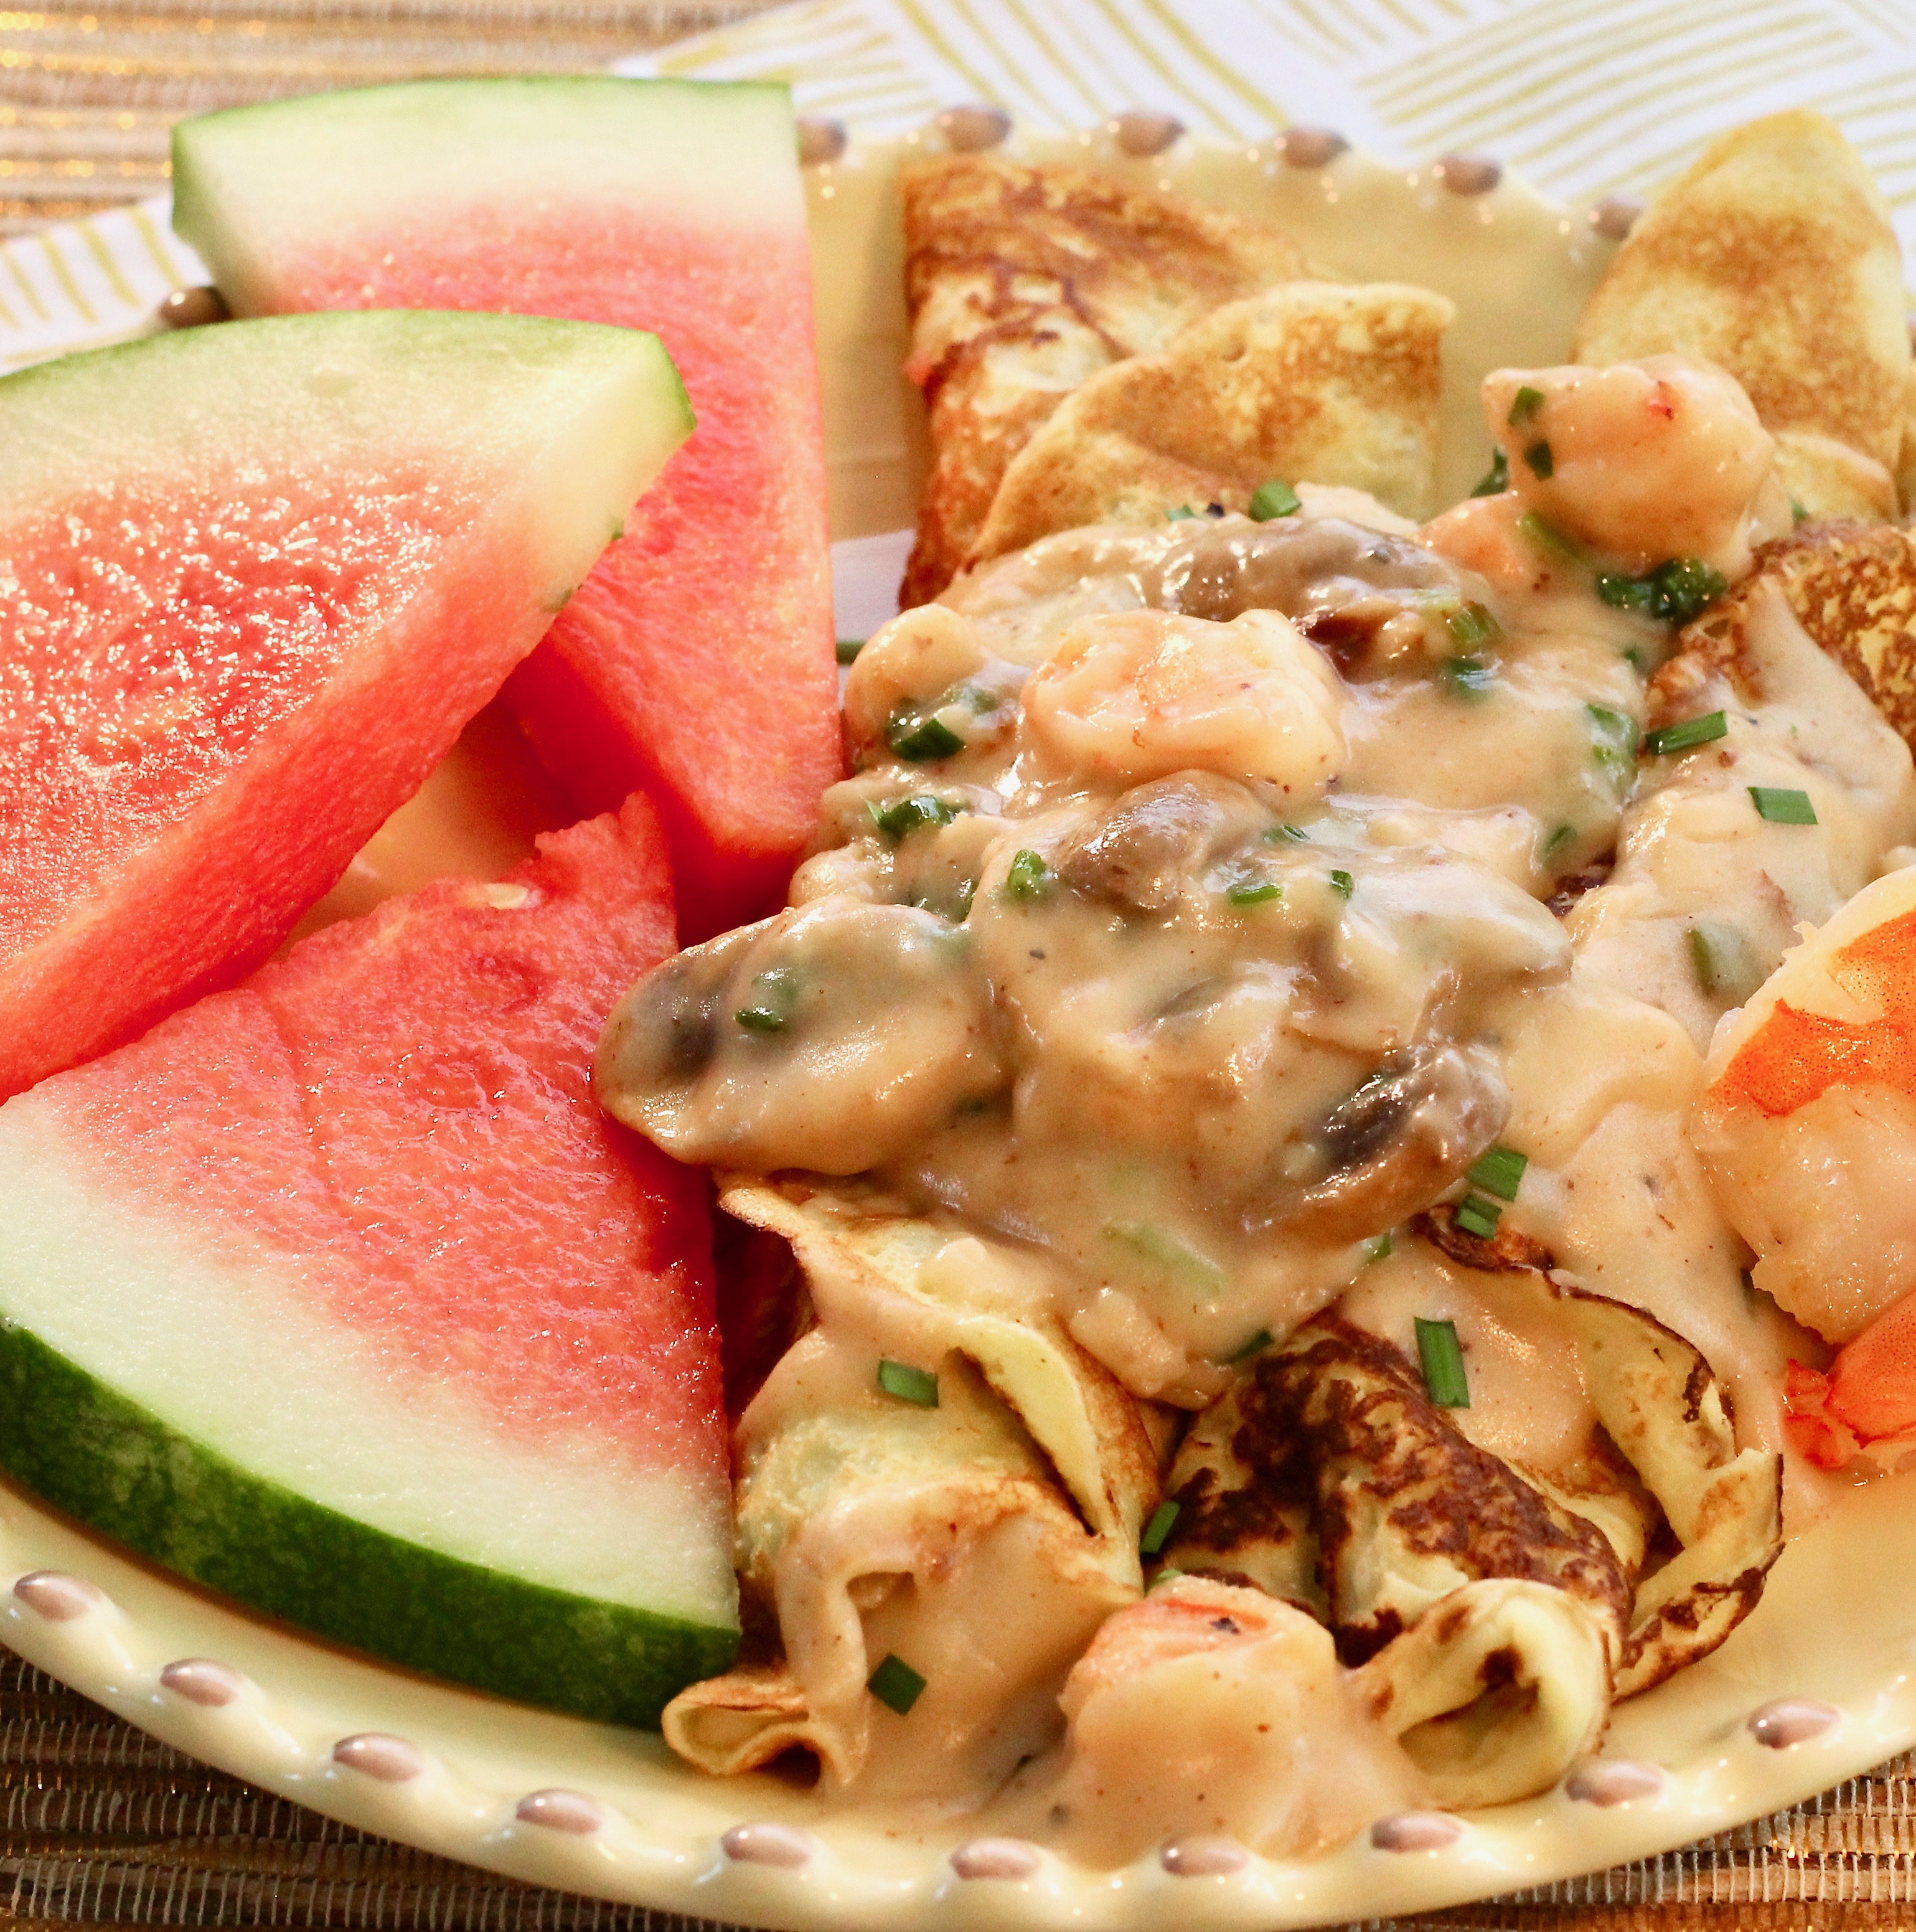 Shrimp and Scallop Crepes